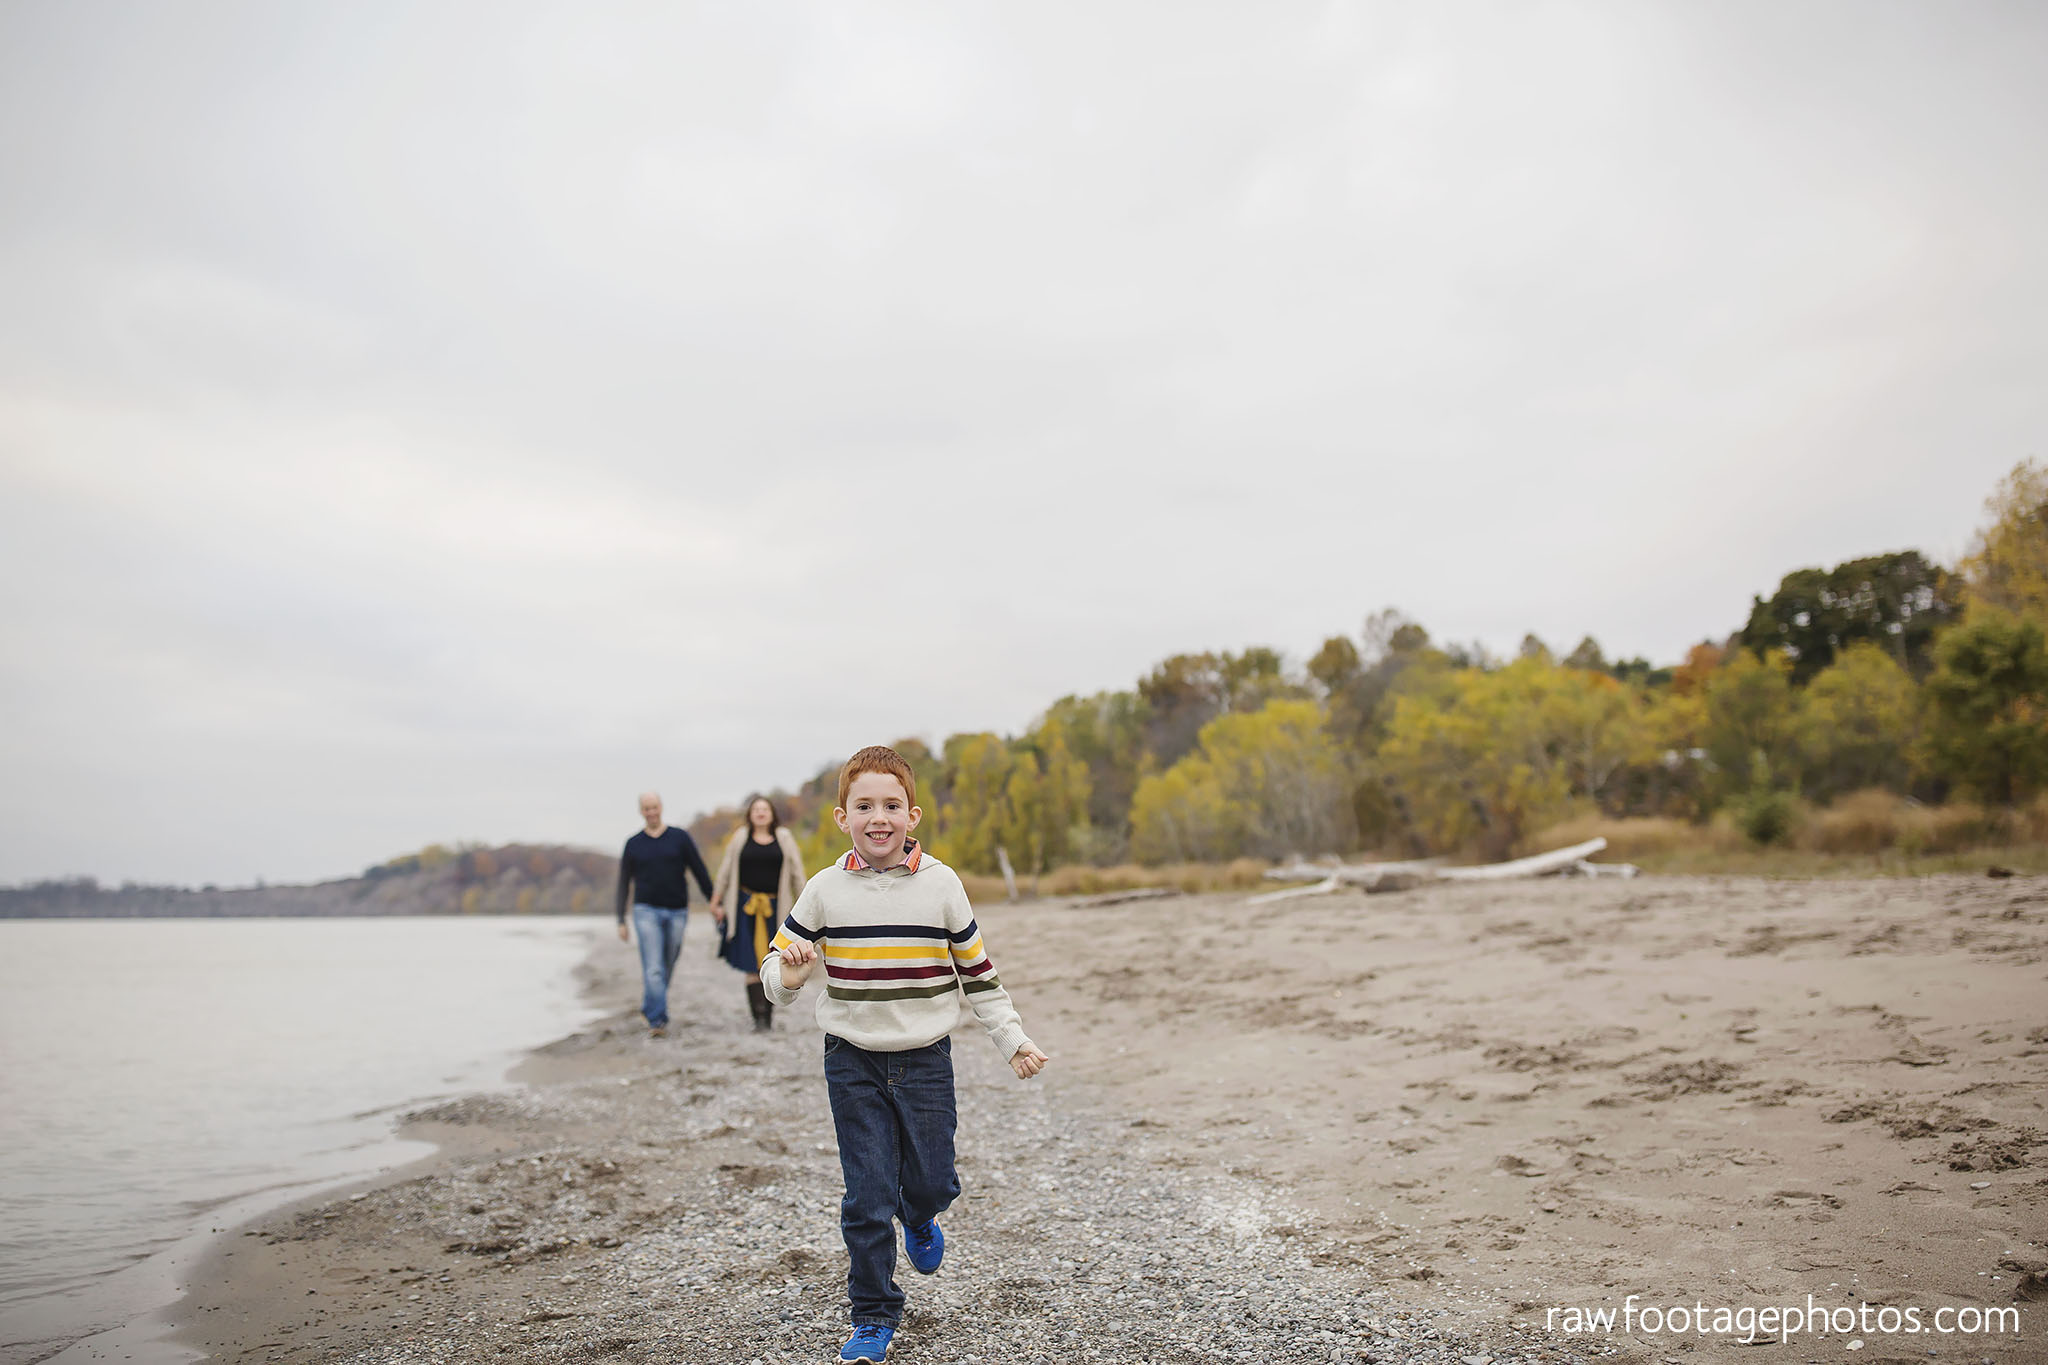 london_ontario_family_photographer-port_stanley_photography-raw_footage_photography-family_photos-beach_photos-fall_family_photos-lifestyle_family_photography-candid_photographer013.jpg